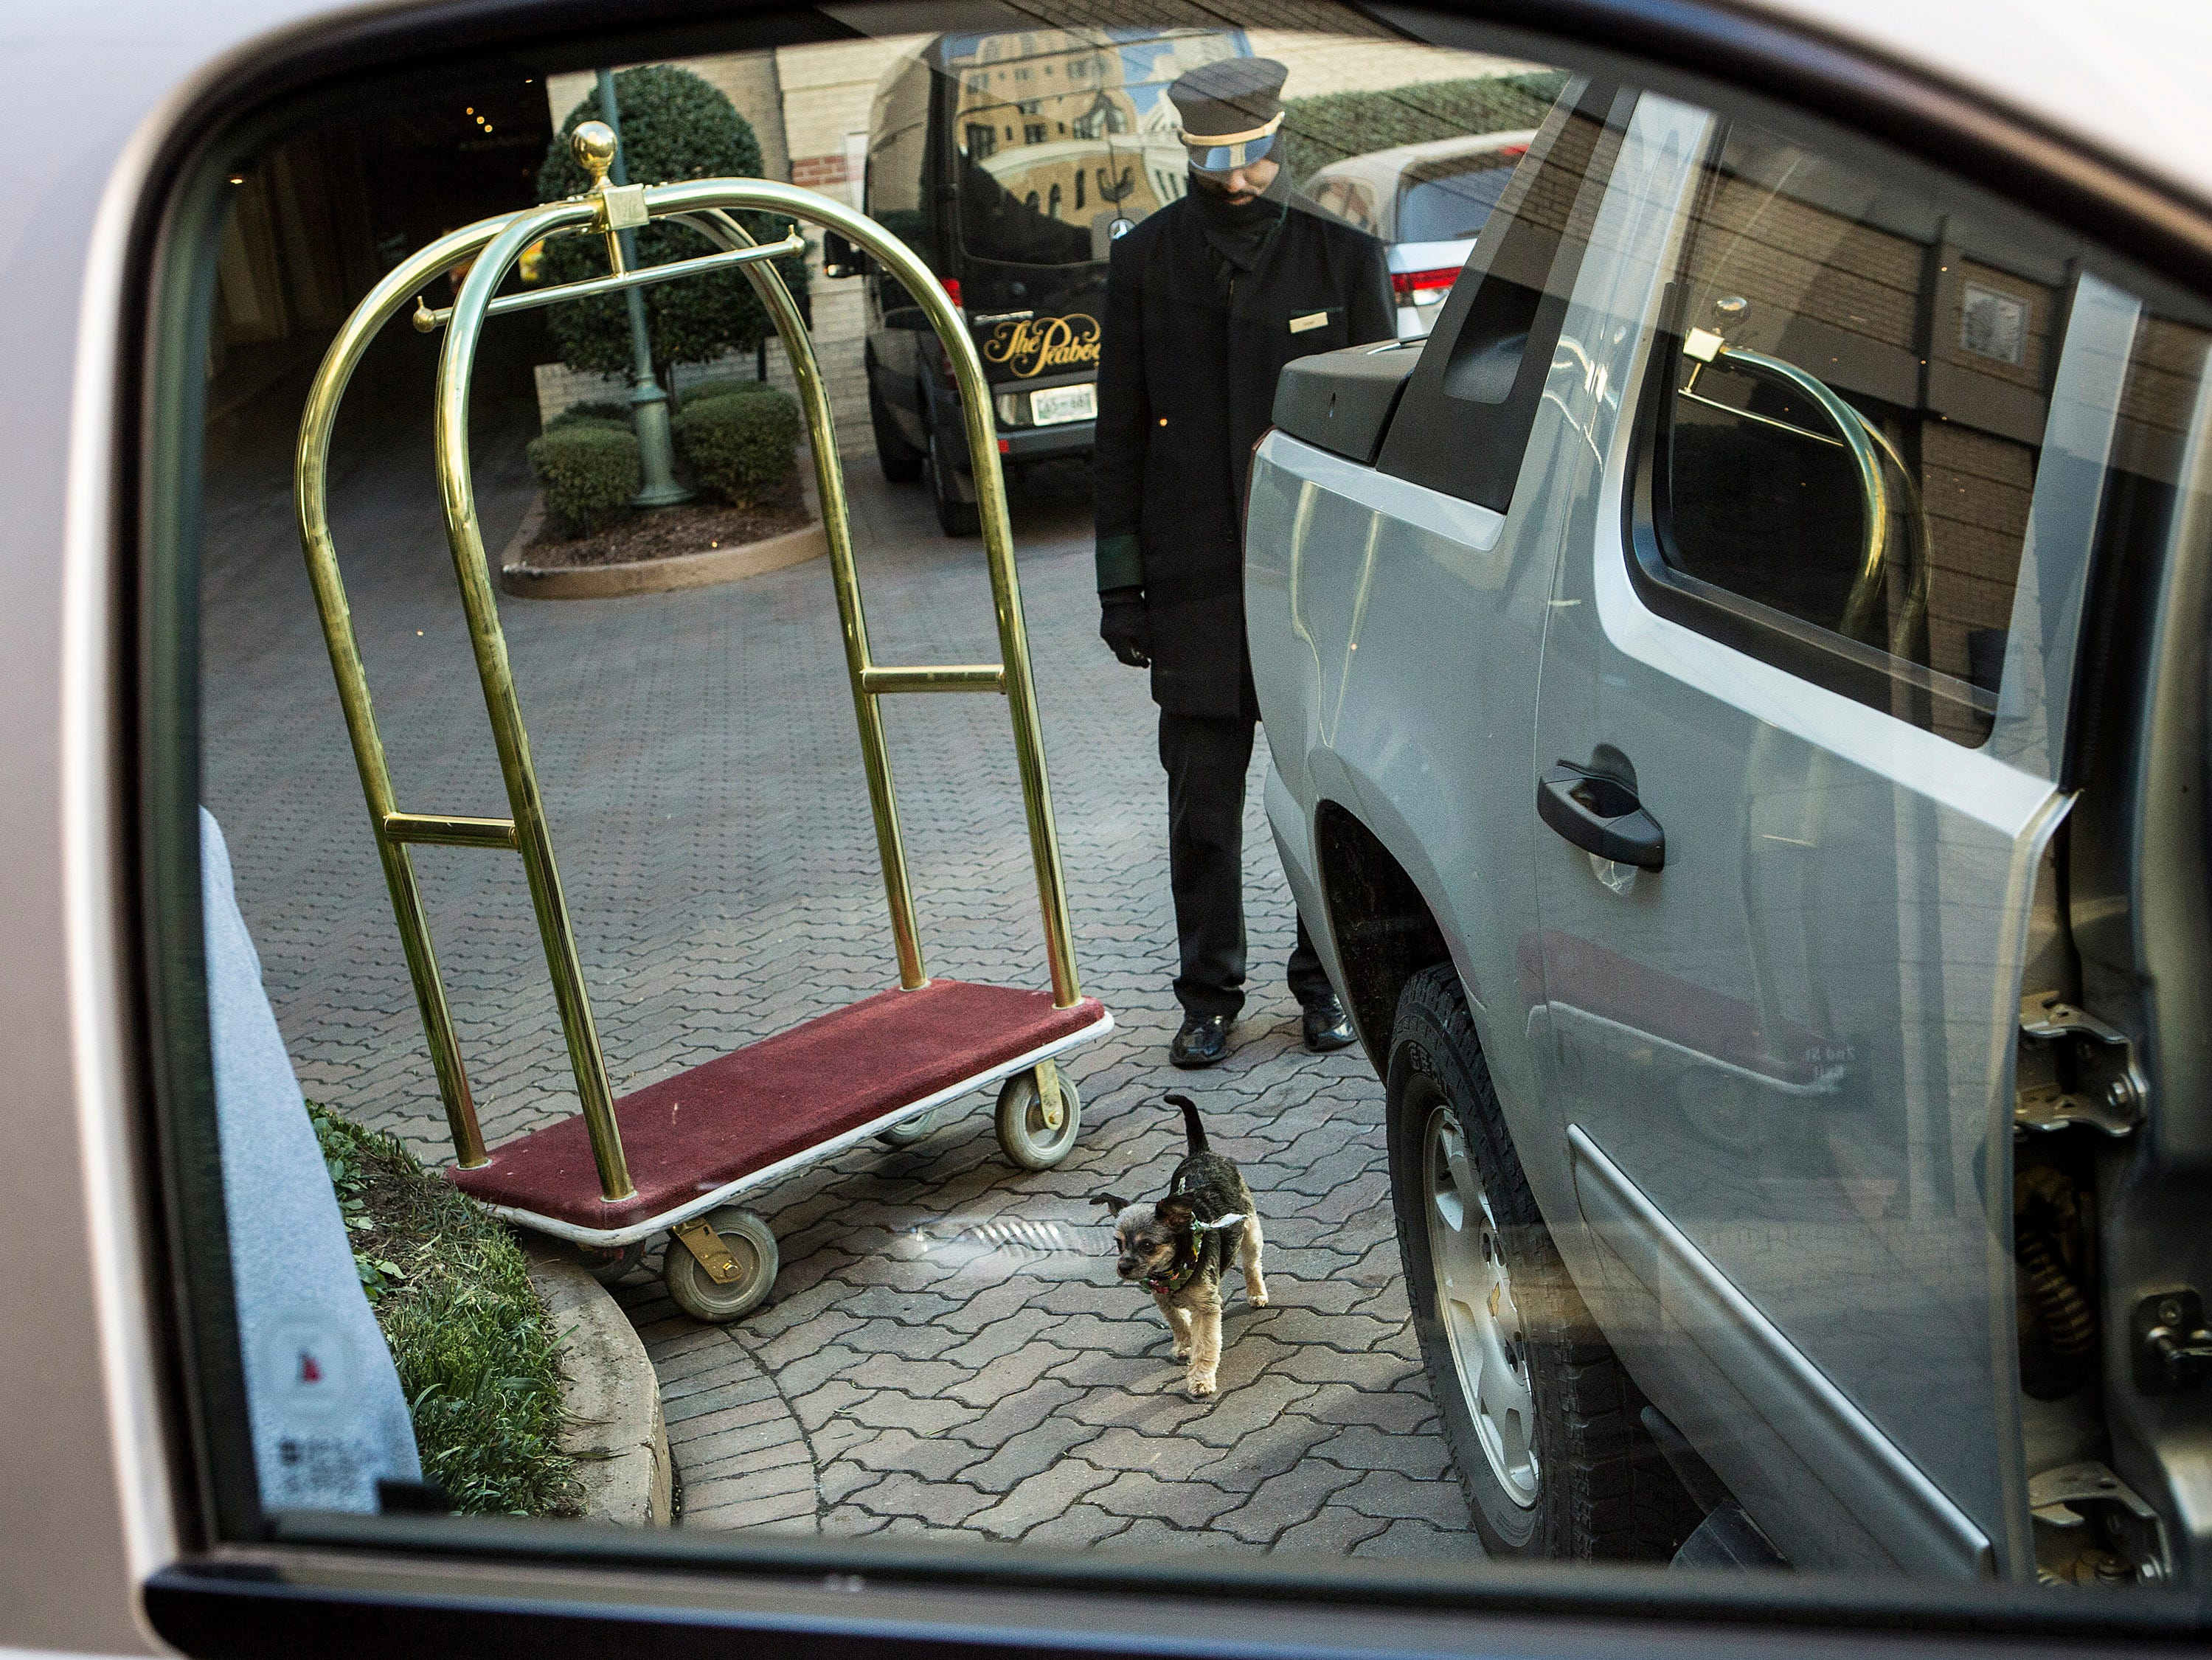 """The 4-year-old dog that was stolen on Jan. 7 from the Canadian couple visiting Memphis for the Elvis Presley birthday festivities, arrived at The Peabody Hotel on Nov. 16, 2015, with its owners, Terry and Lorie Traviss. The couple drove nine hours to reclaim Dixie. """"I'm so happy,"""" Lorie Traviss said about the reunion. """"She does look more like a boy now though,"""" she said about the haircut the dog was given by the robbers to try and disguise the dog."""